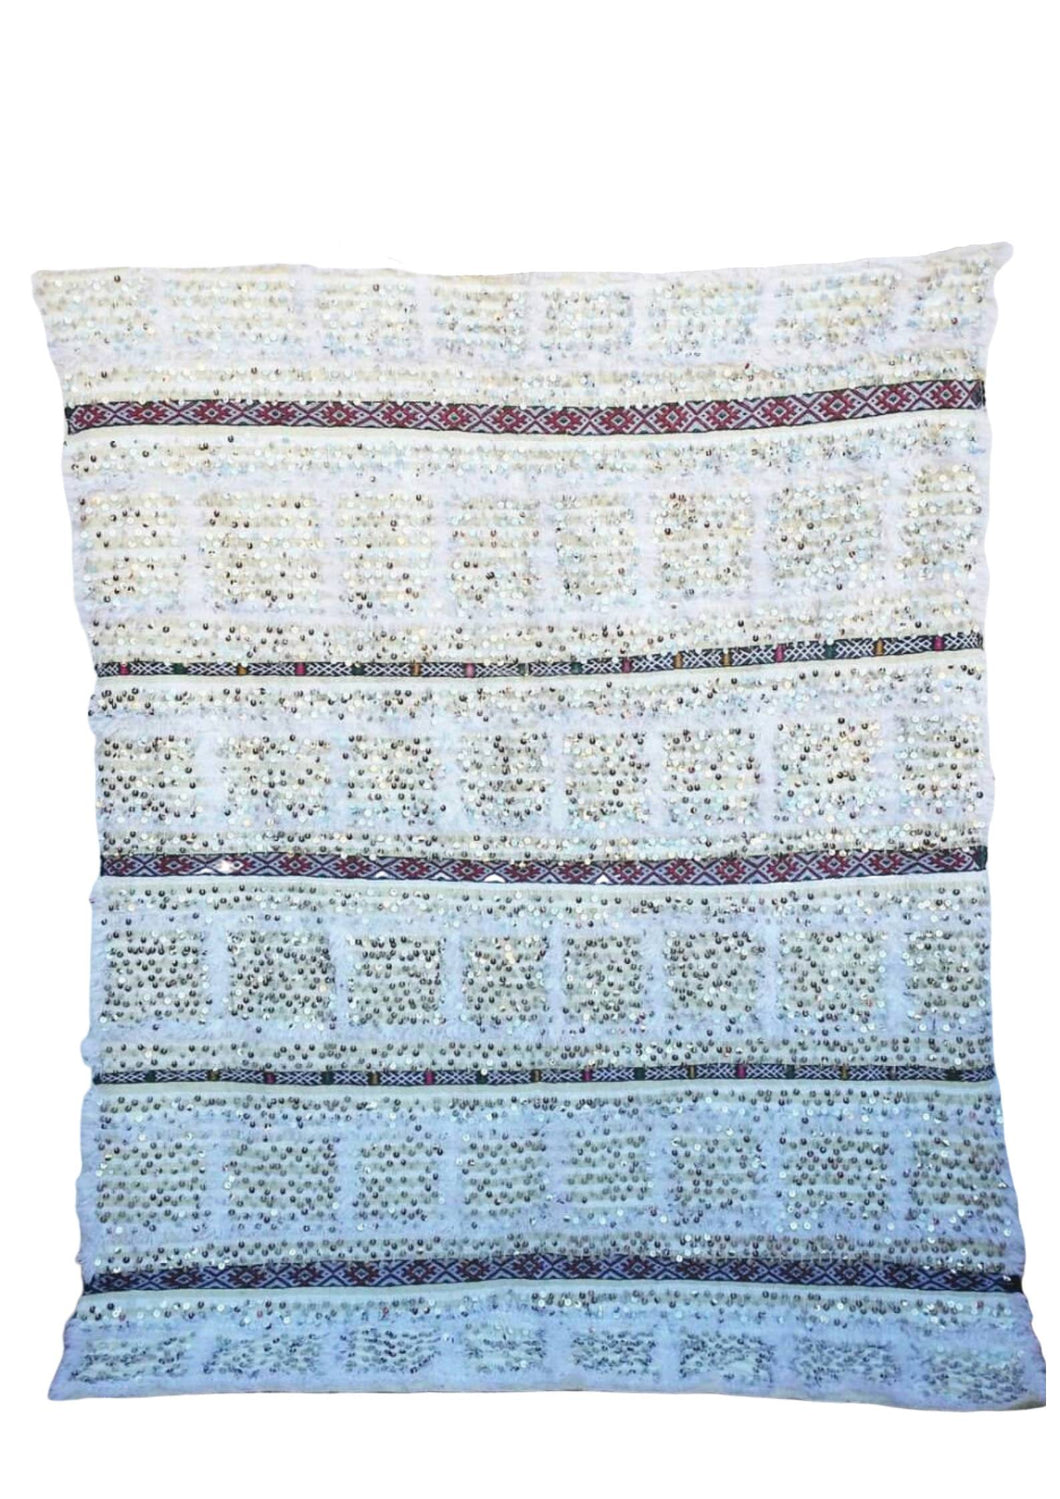 White Handira Wedding Blanket - souks du monde